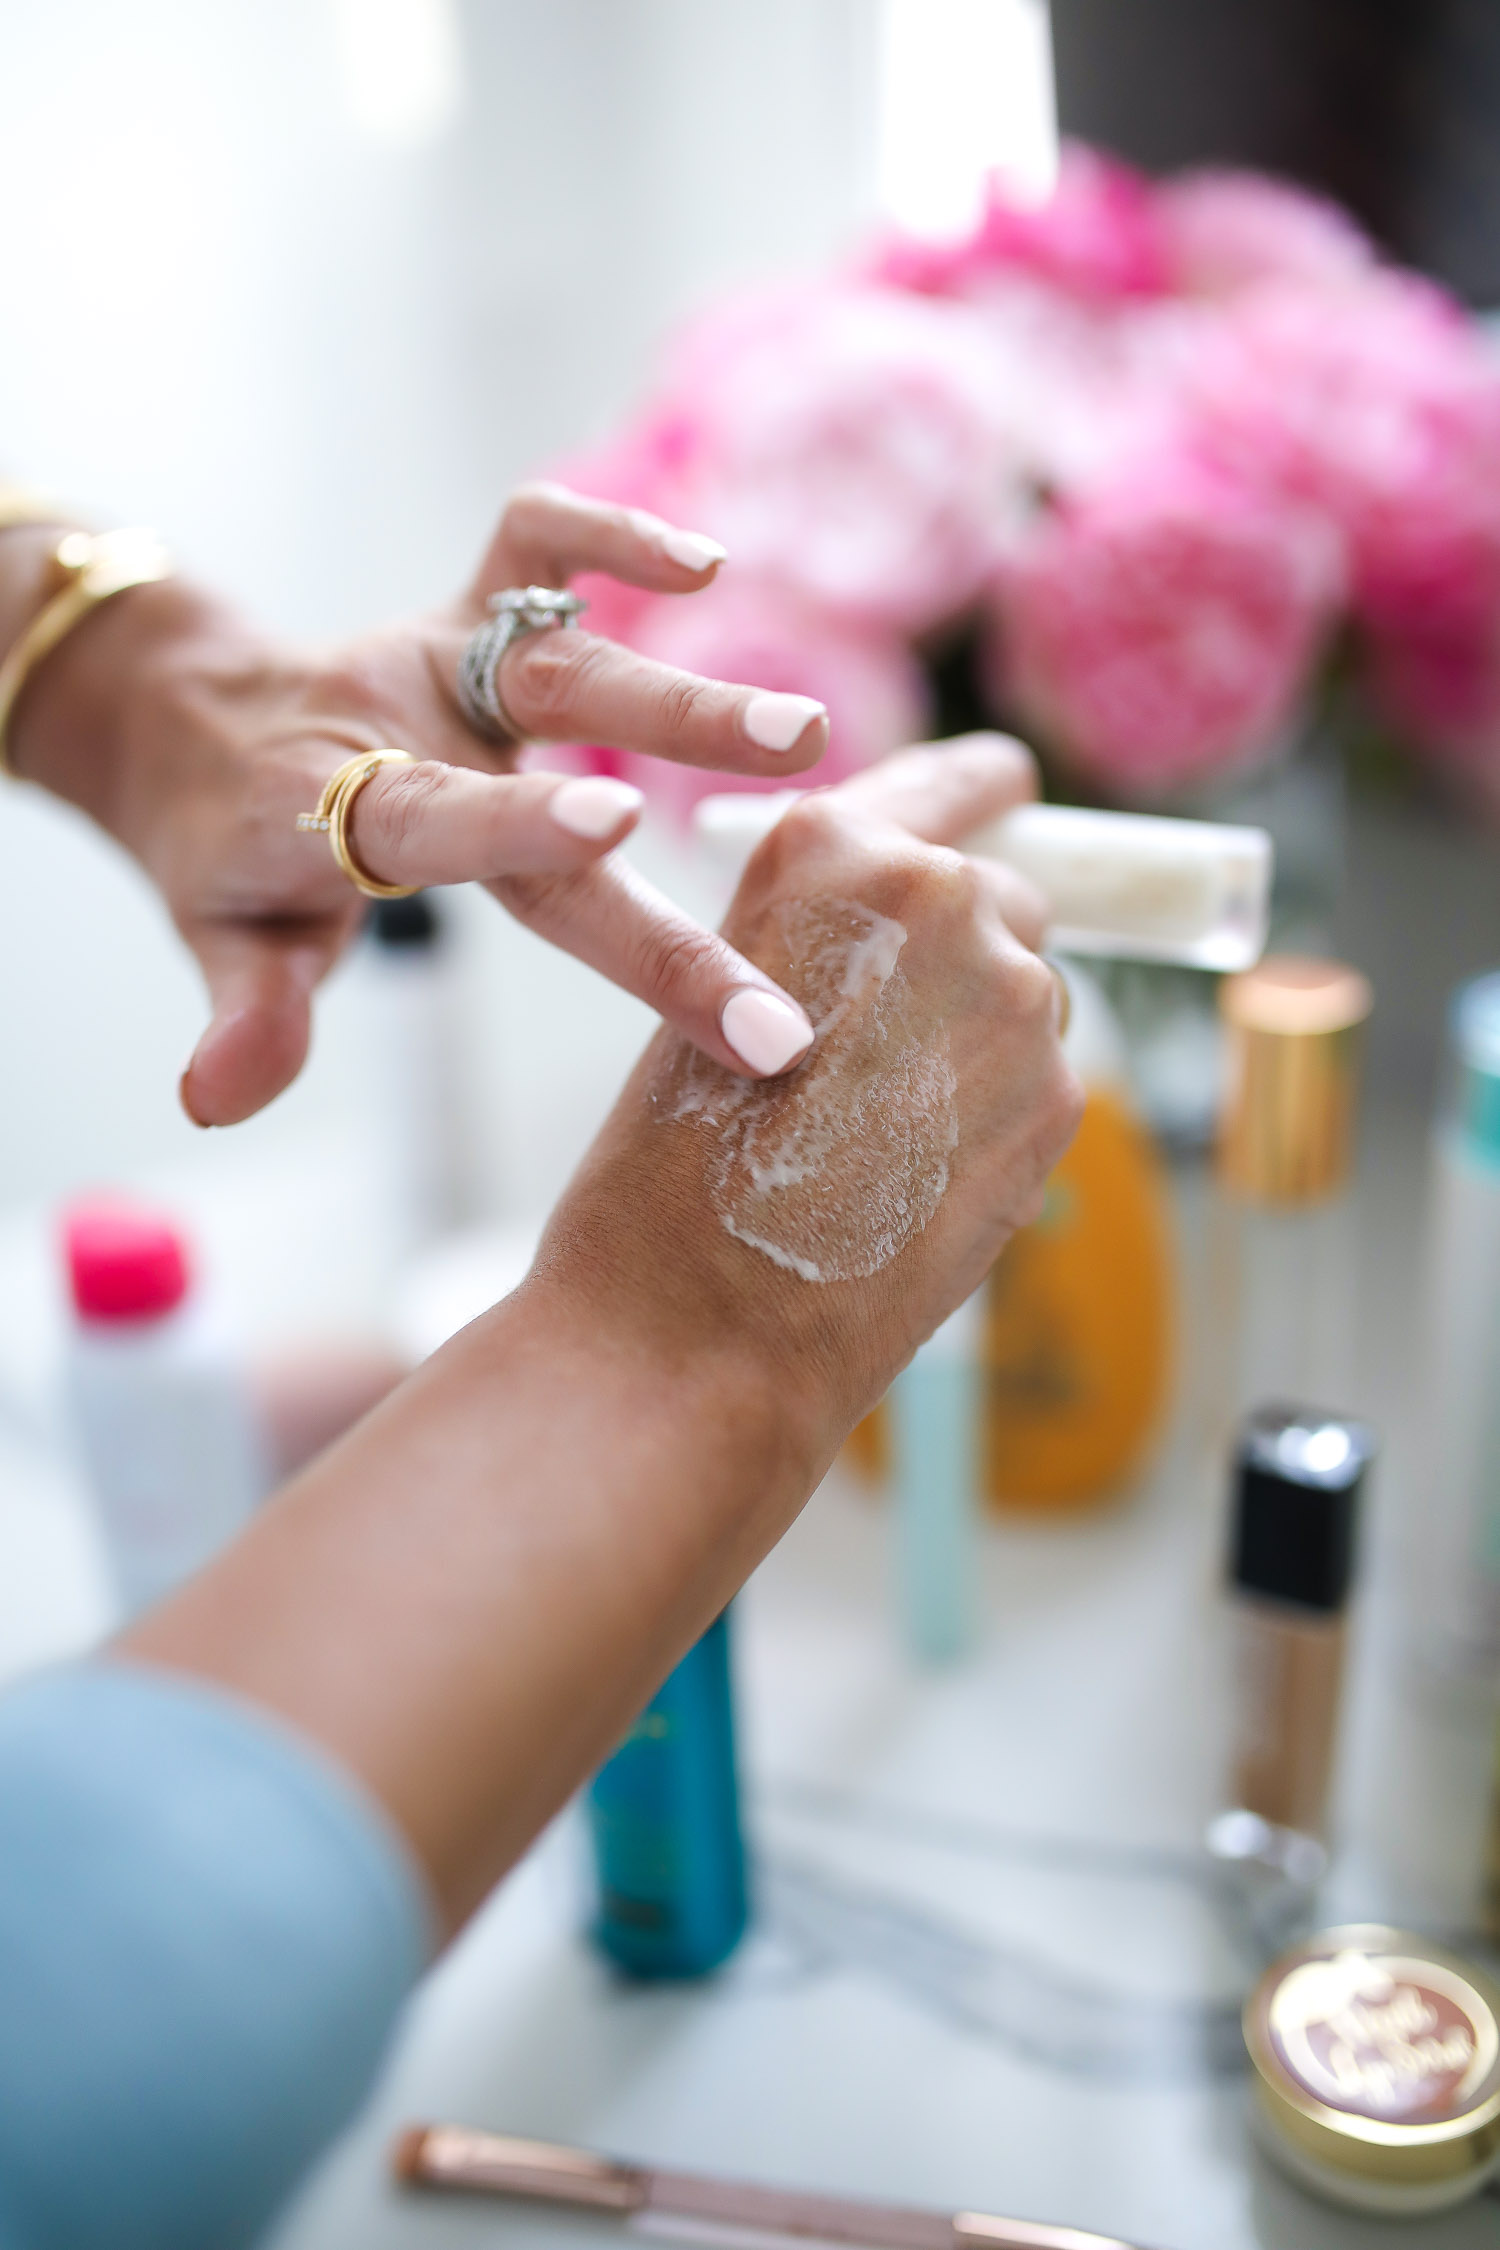 Sephora Favorites by popular US beauty blog, The Sweetest Thing: image of a woman applying a cream to her hand.